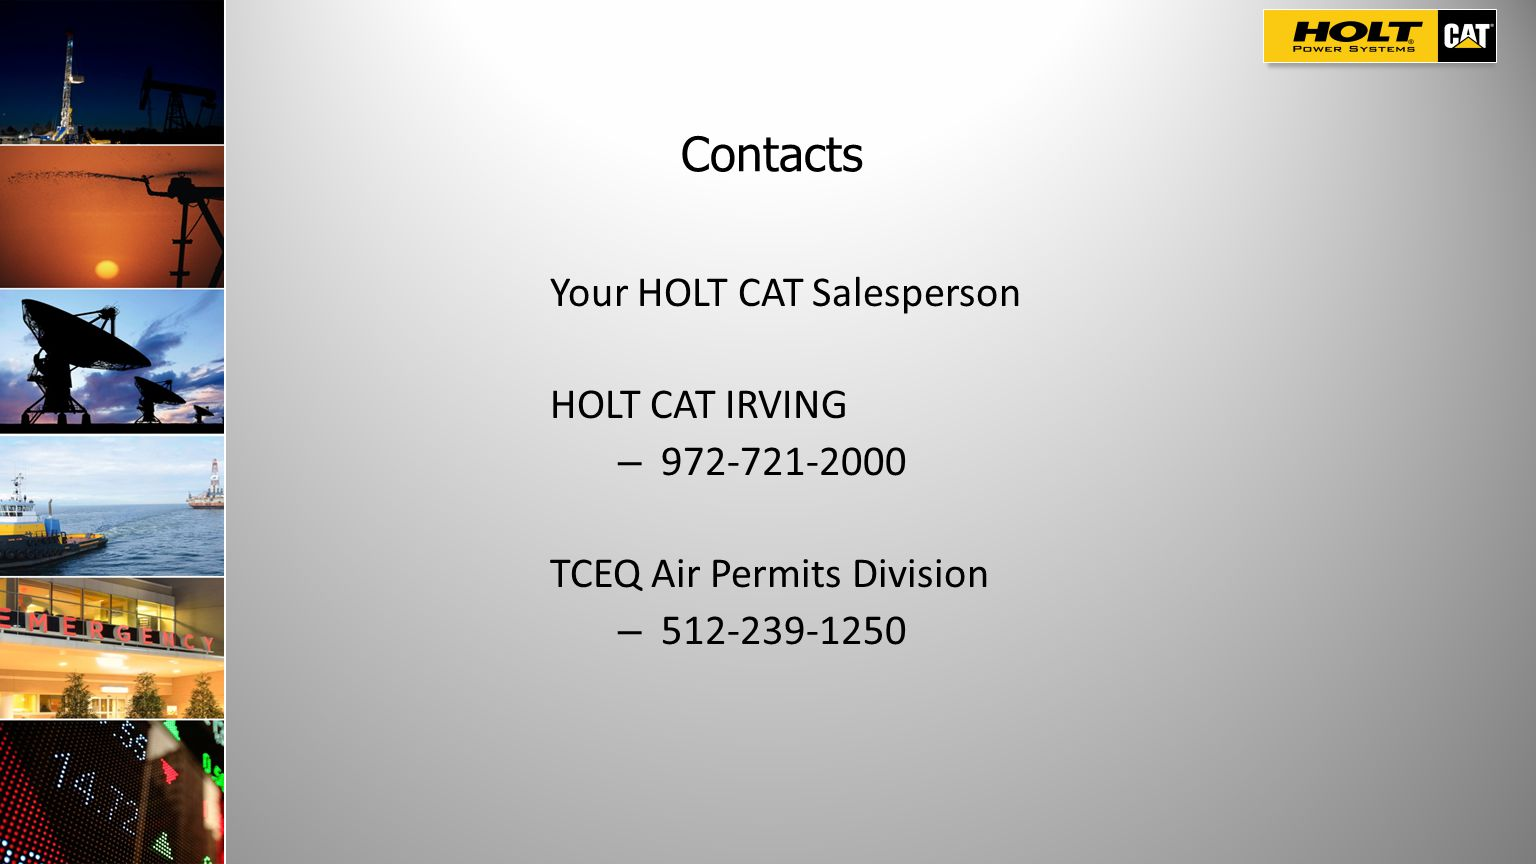 Contacts Your HOLT CAT Salesperson HOLT CAT IRVING – 972-721-2000 TCEQ Air Permits Division – 512-239-1250